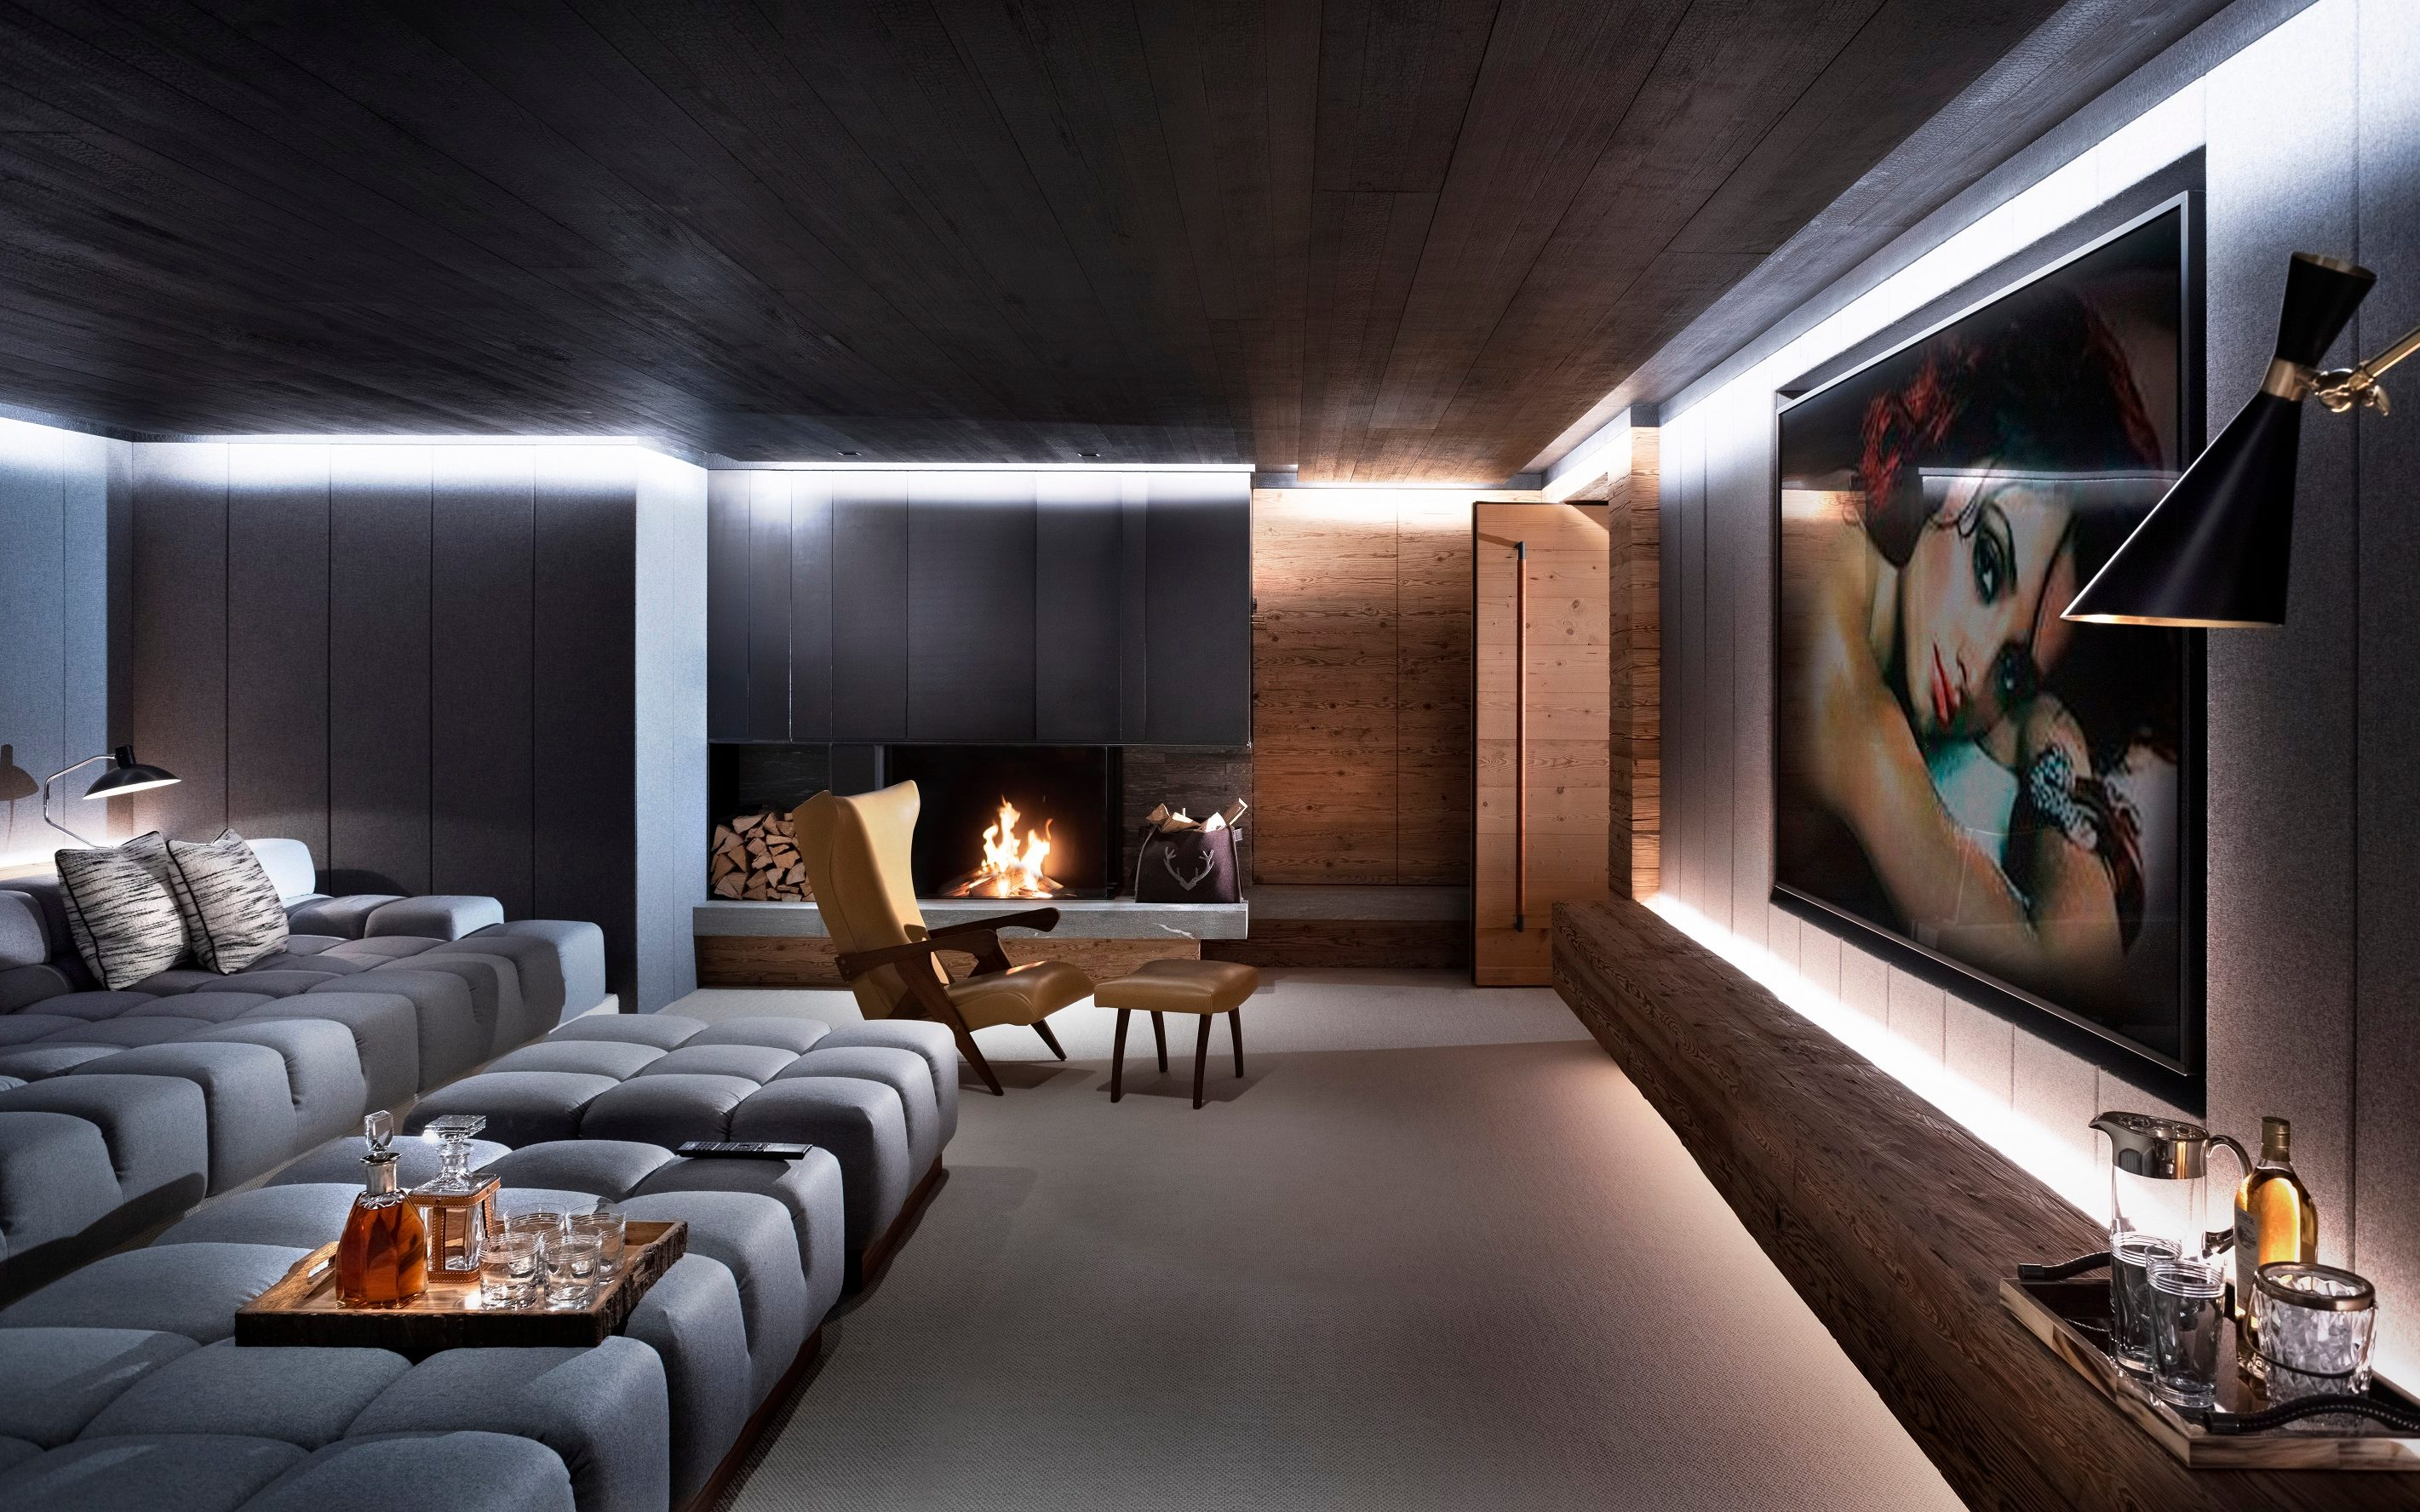 east london sofa cinema leon s bed mattress hideaways to seek how media rooms and private cinemas became the decades of open plan as layout choice for modern home we are coming back idea odd interior wall installing a